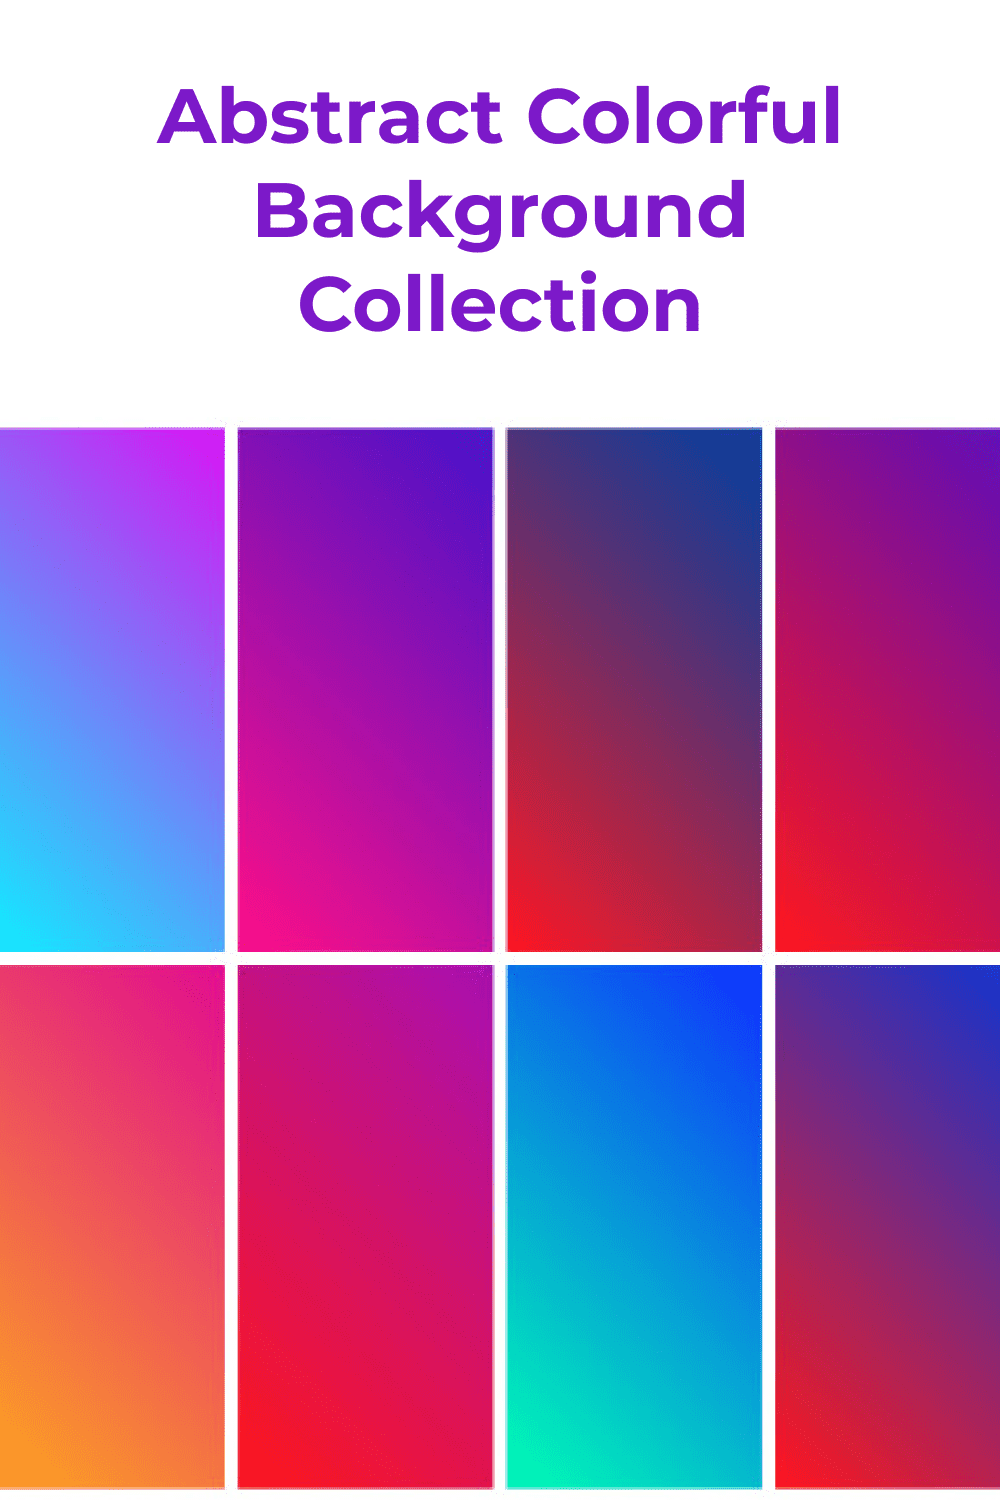 A variety of color schemes and linear gradients are great background options.